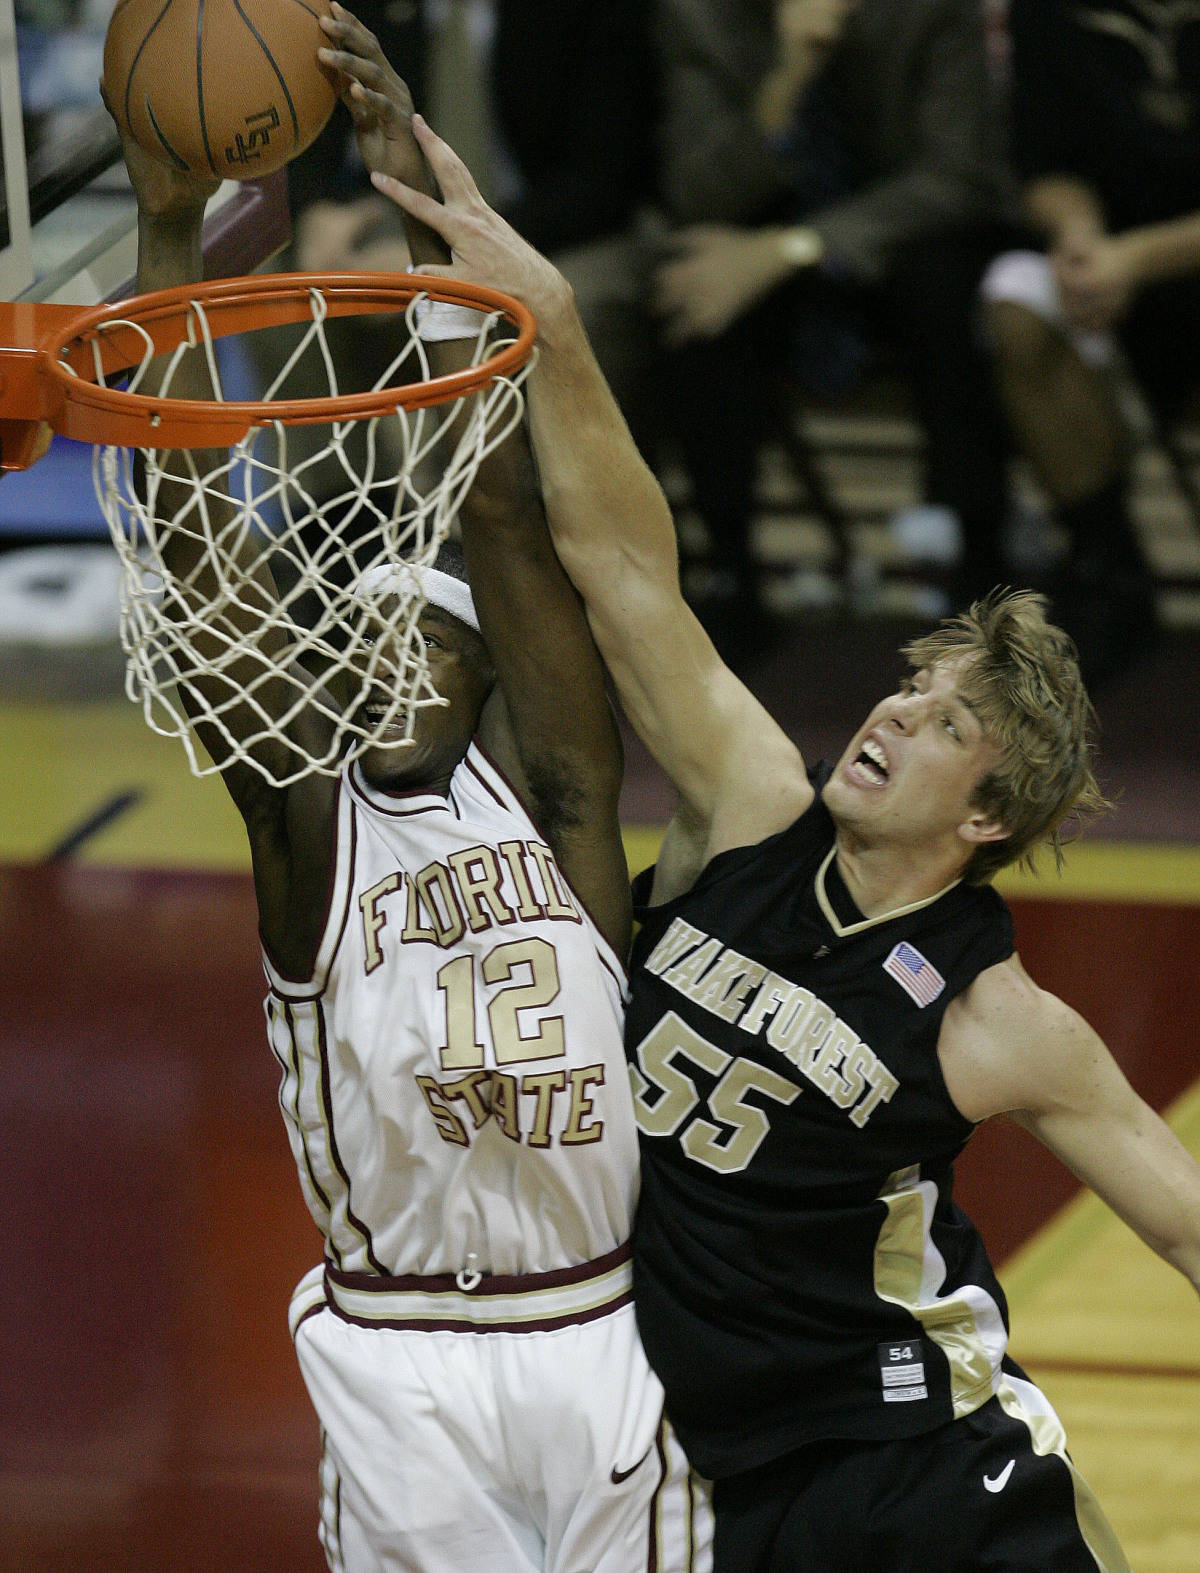 Wake Forest's Kyle Visser, right, fouls Florida State's Al Thornton as he Thornton scores during the first half of a basketball game, Saturday, Jan. 27, 2007, in Tallahassee, Fla. (AP Photo/Phil Coale)